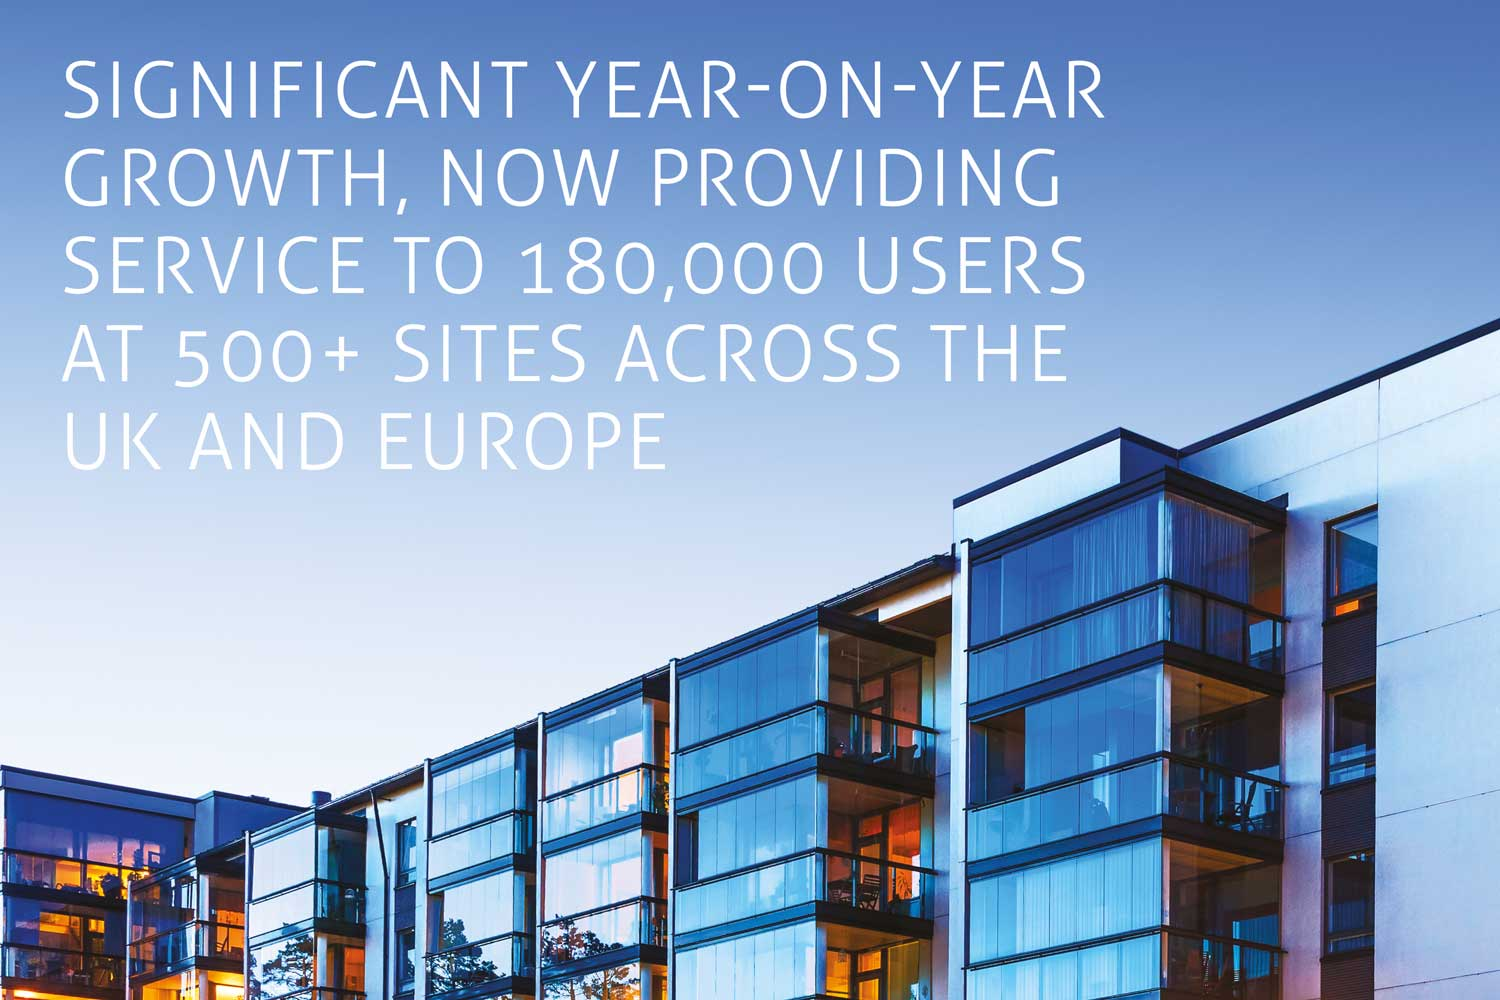 Significant year-on-year growth, now providing service to 180,000 users at 500+ sites across the UK and Europe